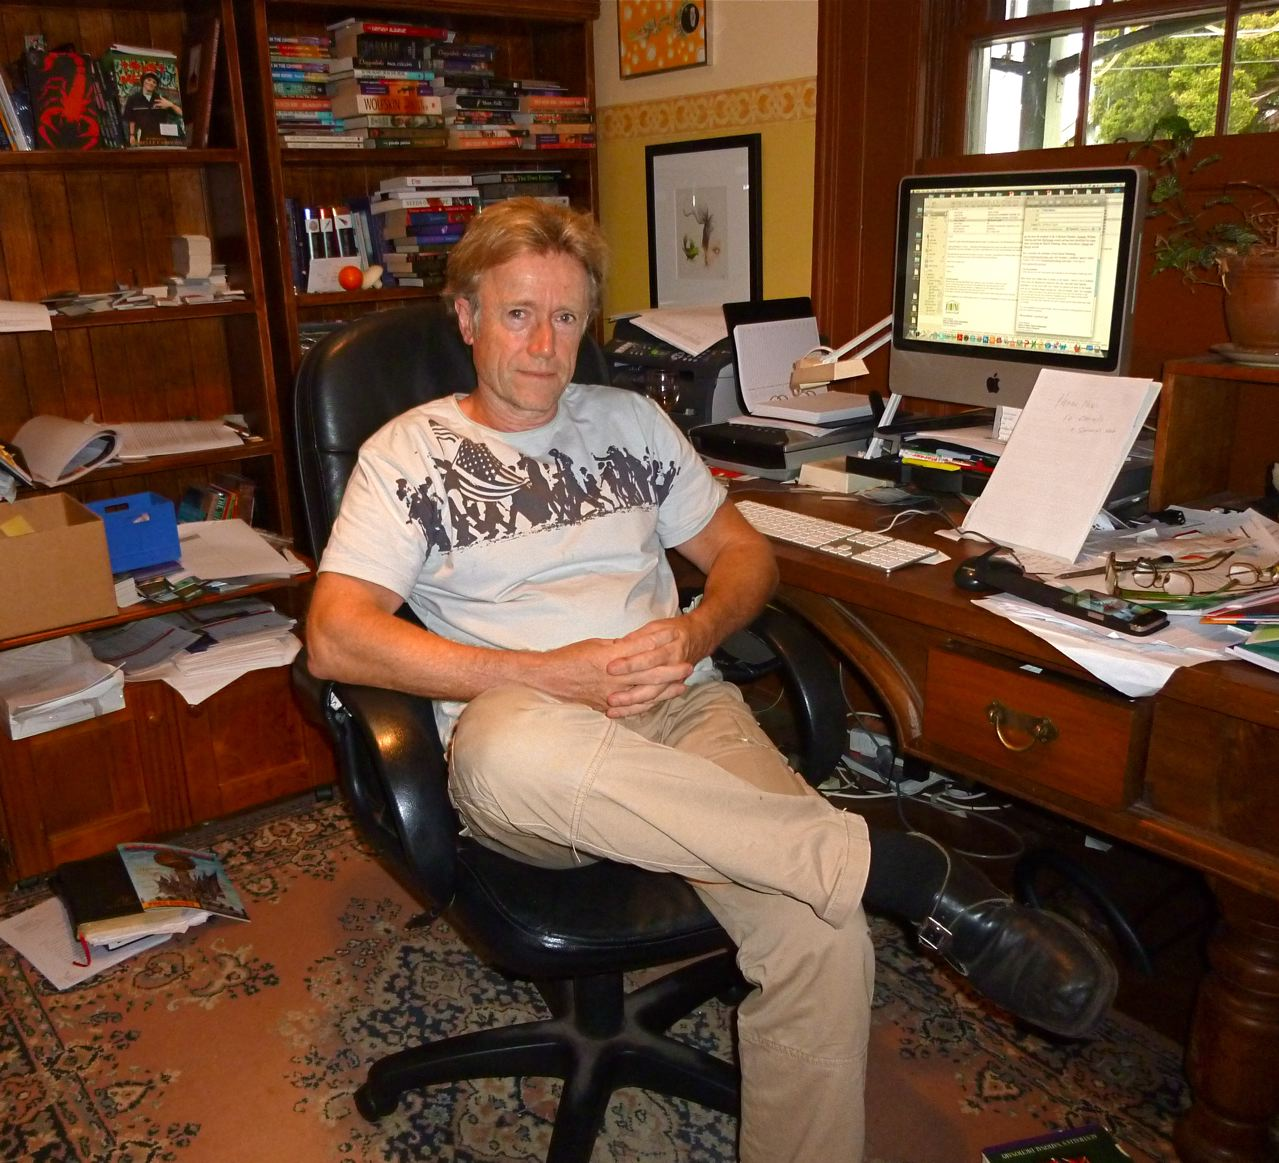 writing studio Writing studio the writing studio is an informal, comfortable, supportive place to work on your academic writing assignments, digital publications (blogs, wikis, social media), literary competition submissions, transitional (application essays), career search letters and writing for fun.